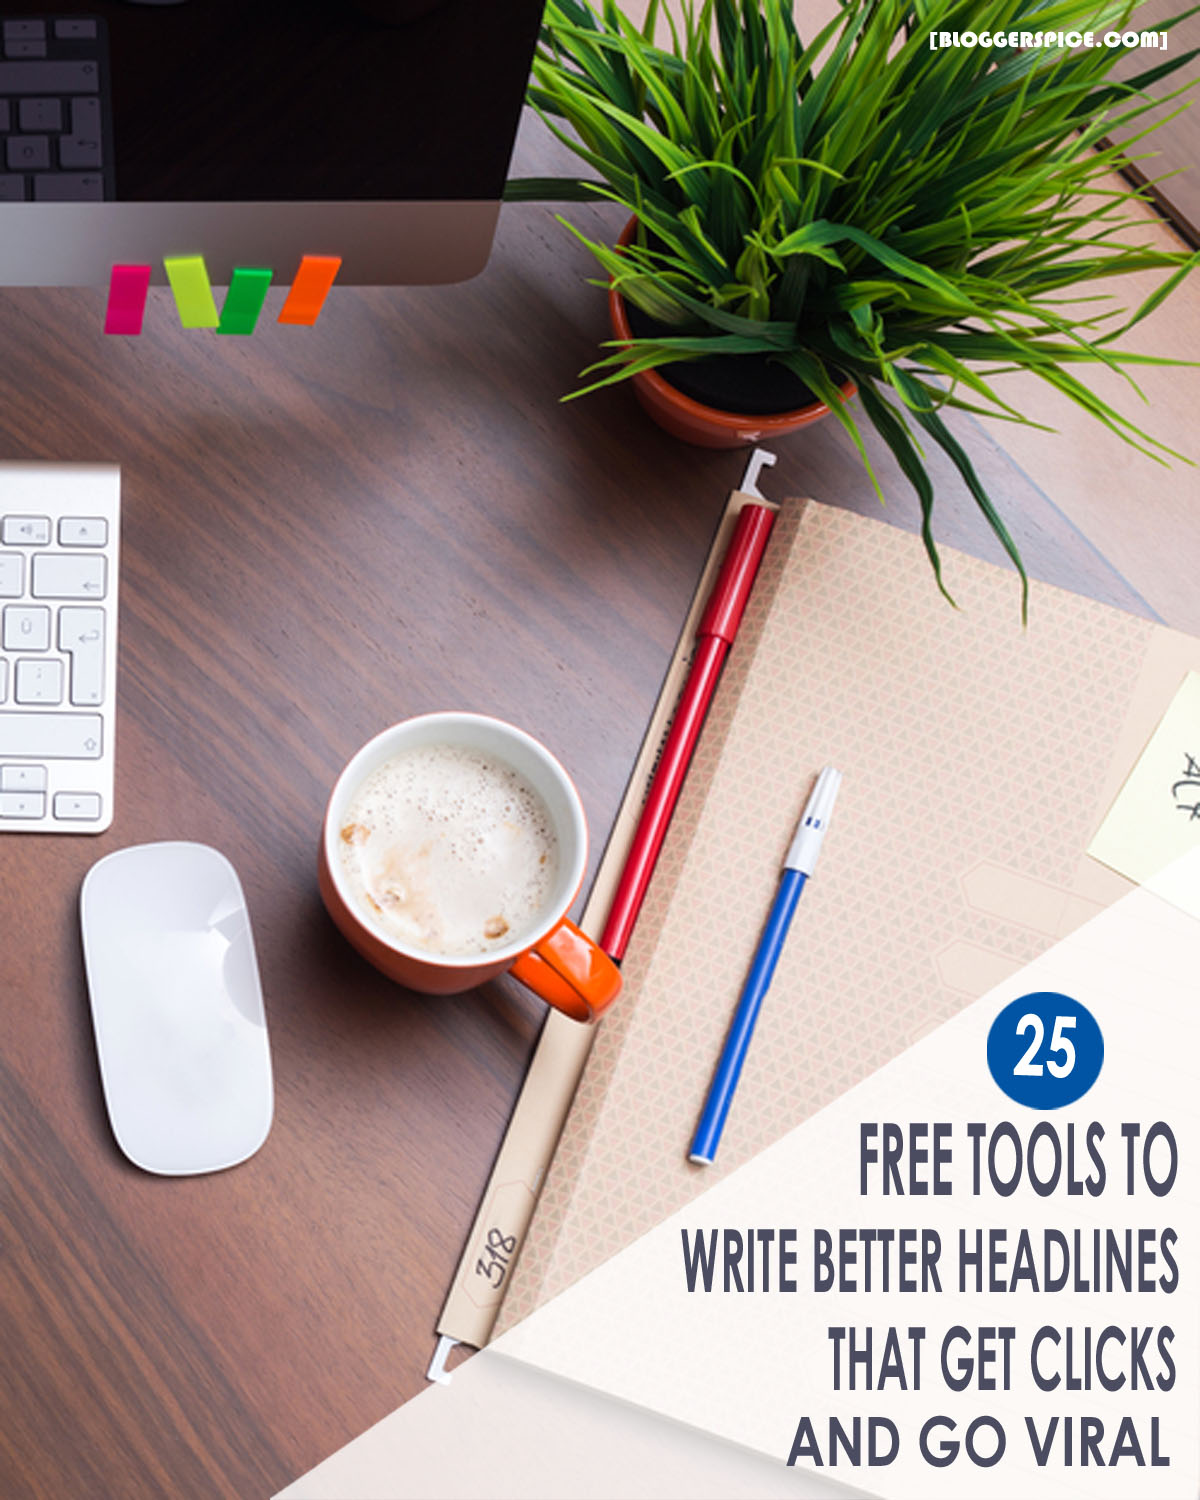 25 Free online Tools To Write Better Headlines That Get Clicks And Go Viral